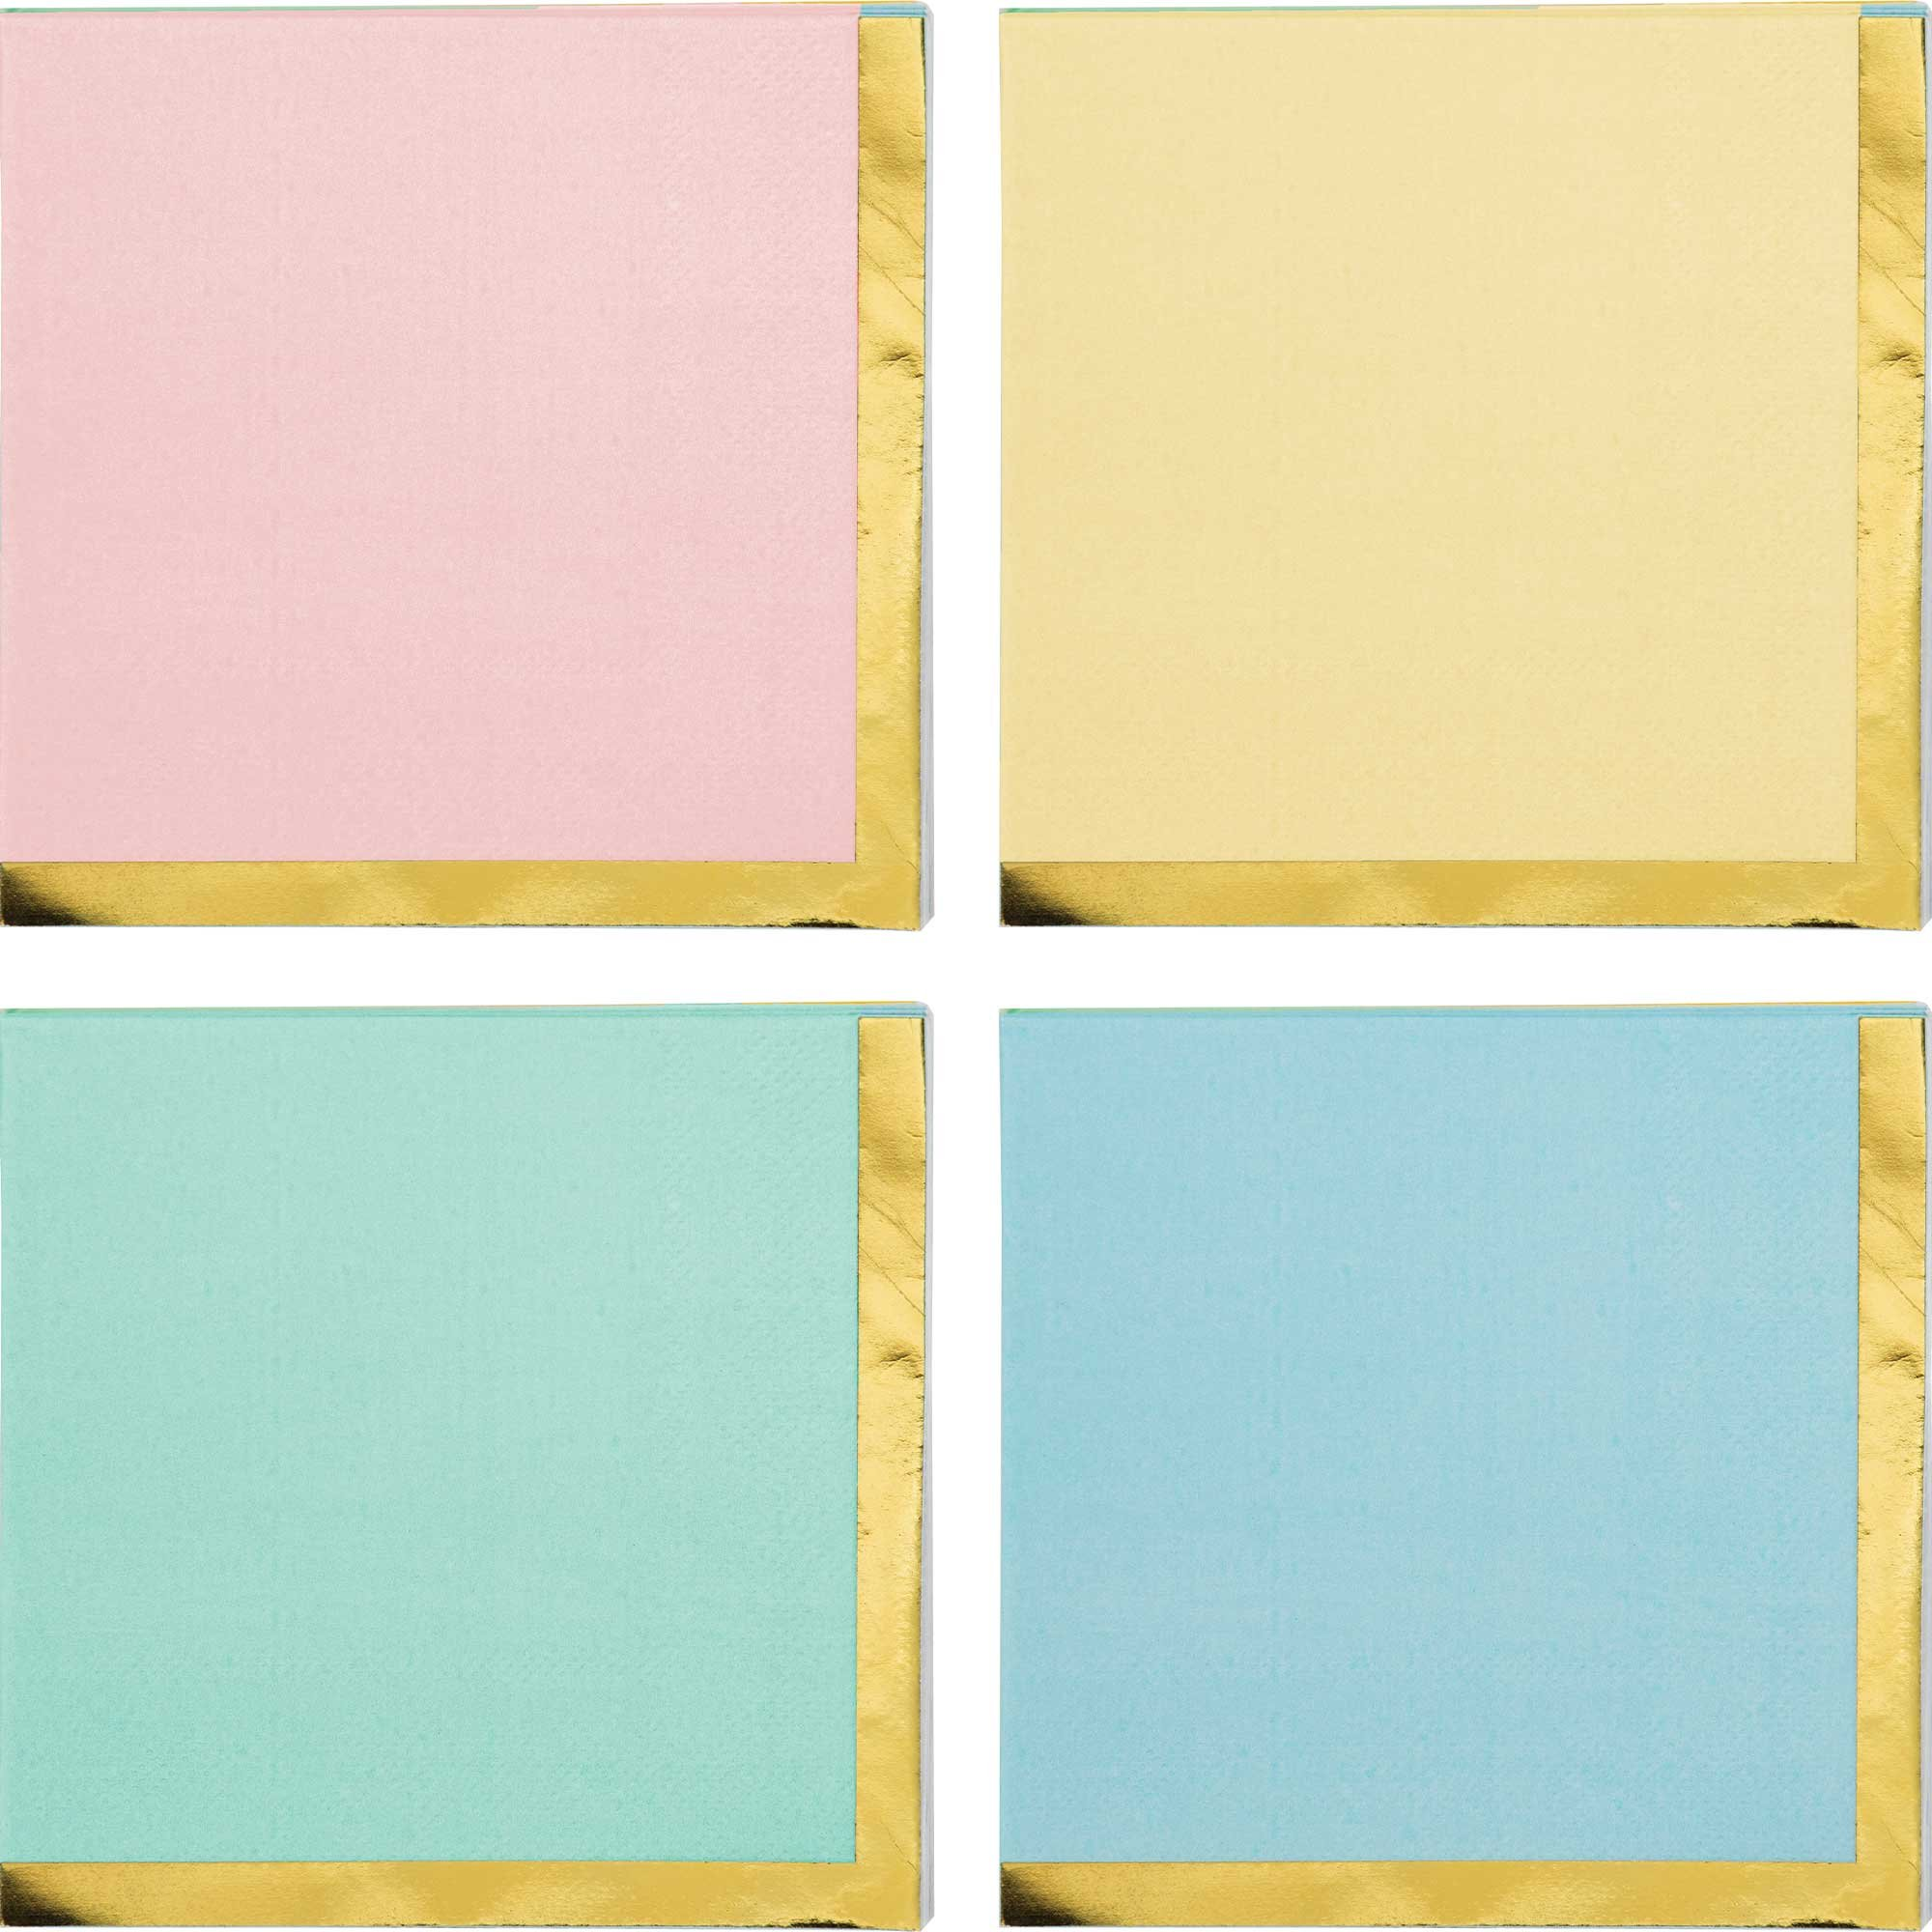 Pastel Celebrations Beverage Napkins Scalloped & Gold Foil